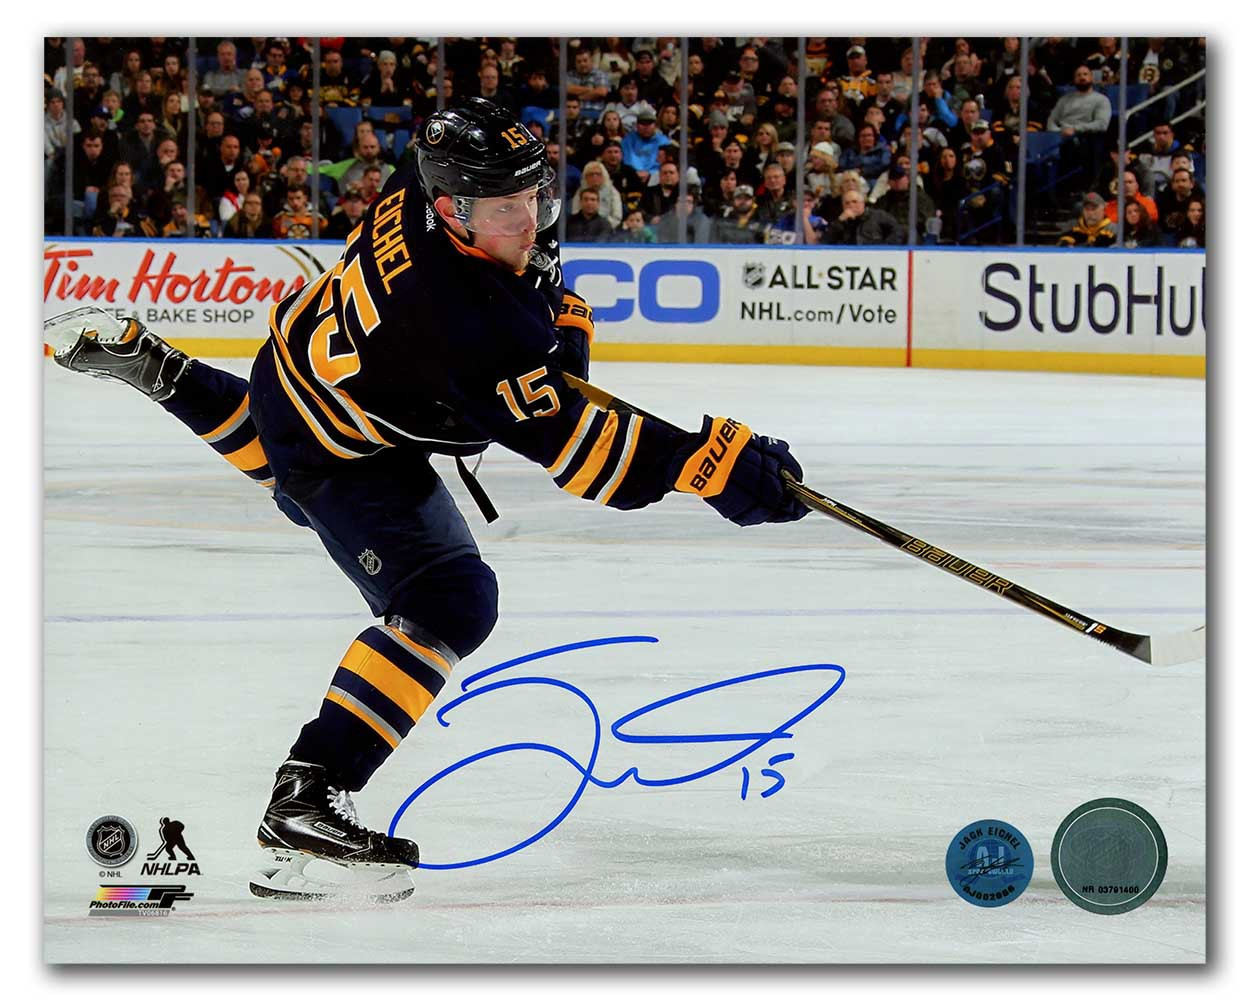 a1bca6ceb Jack Eichel Buffalo Sabres Autographed Signed Hockey Sniper 8x10 Photo -  Certified Authentic